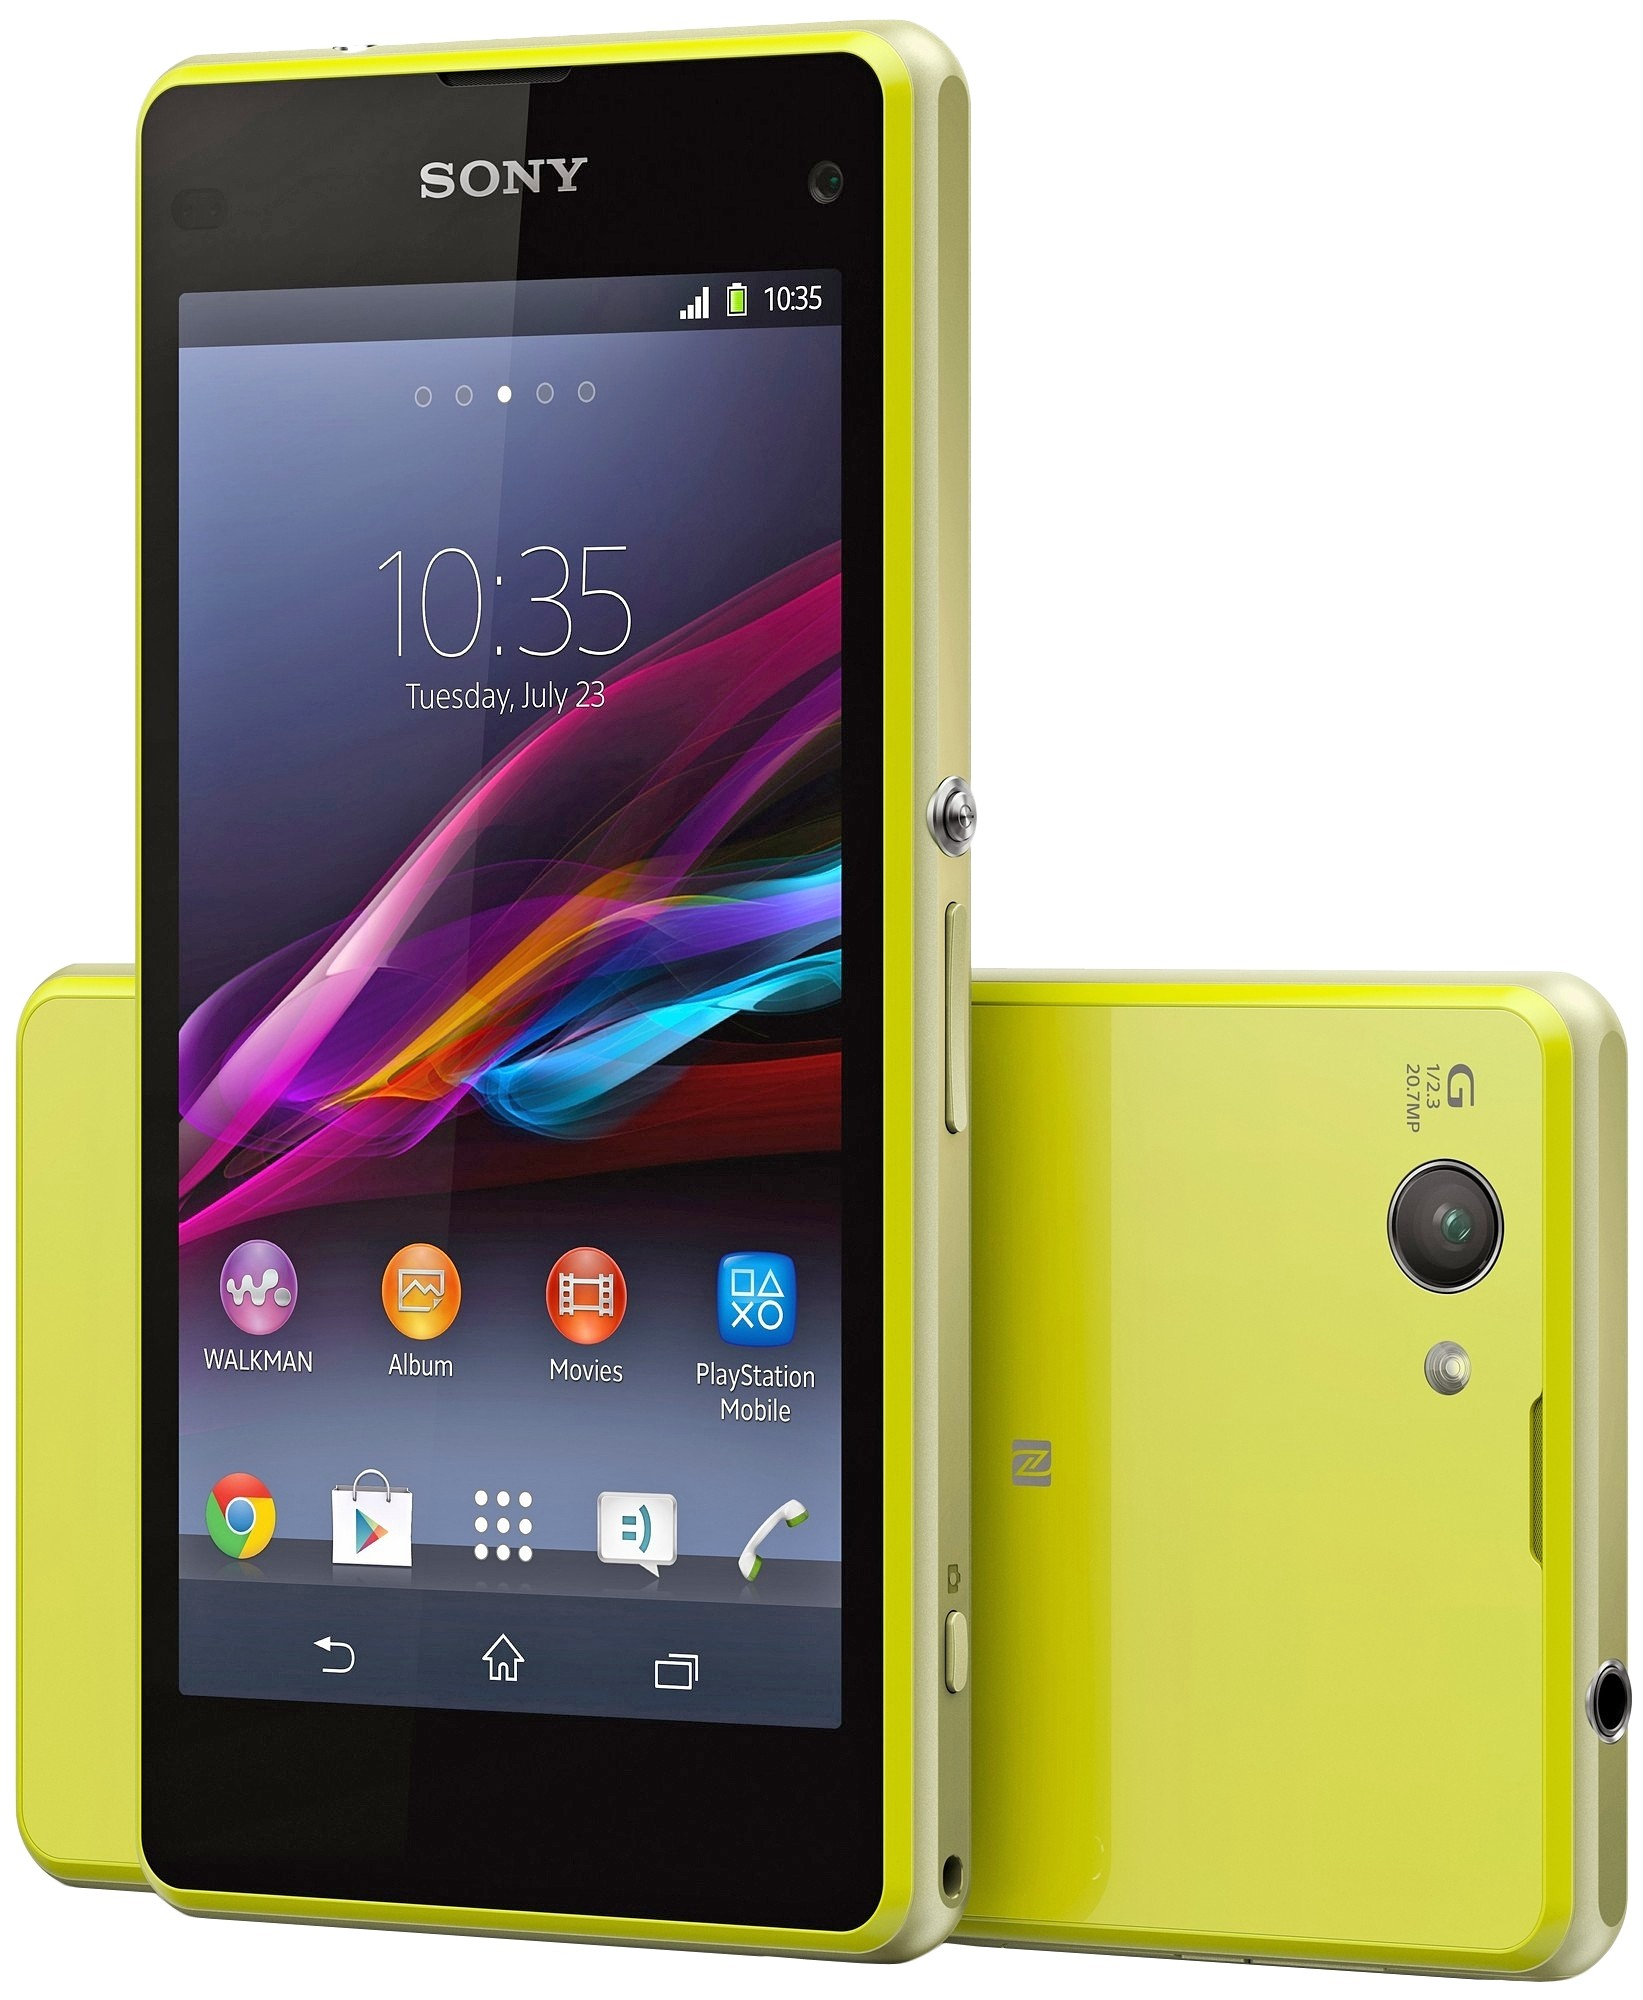 sony xperia z1 compact d5503 lime. Black Bedroom Furniture Sets. Home Design Ideas